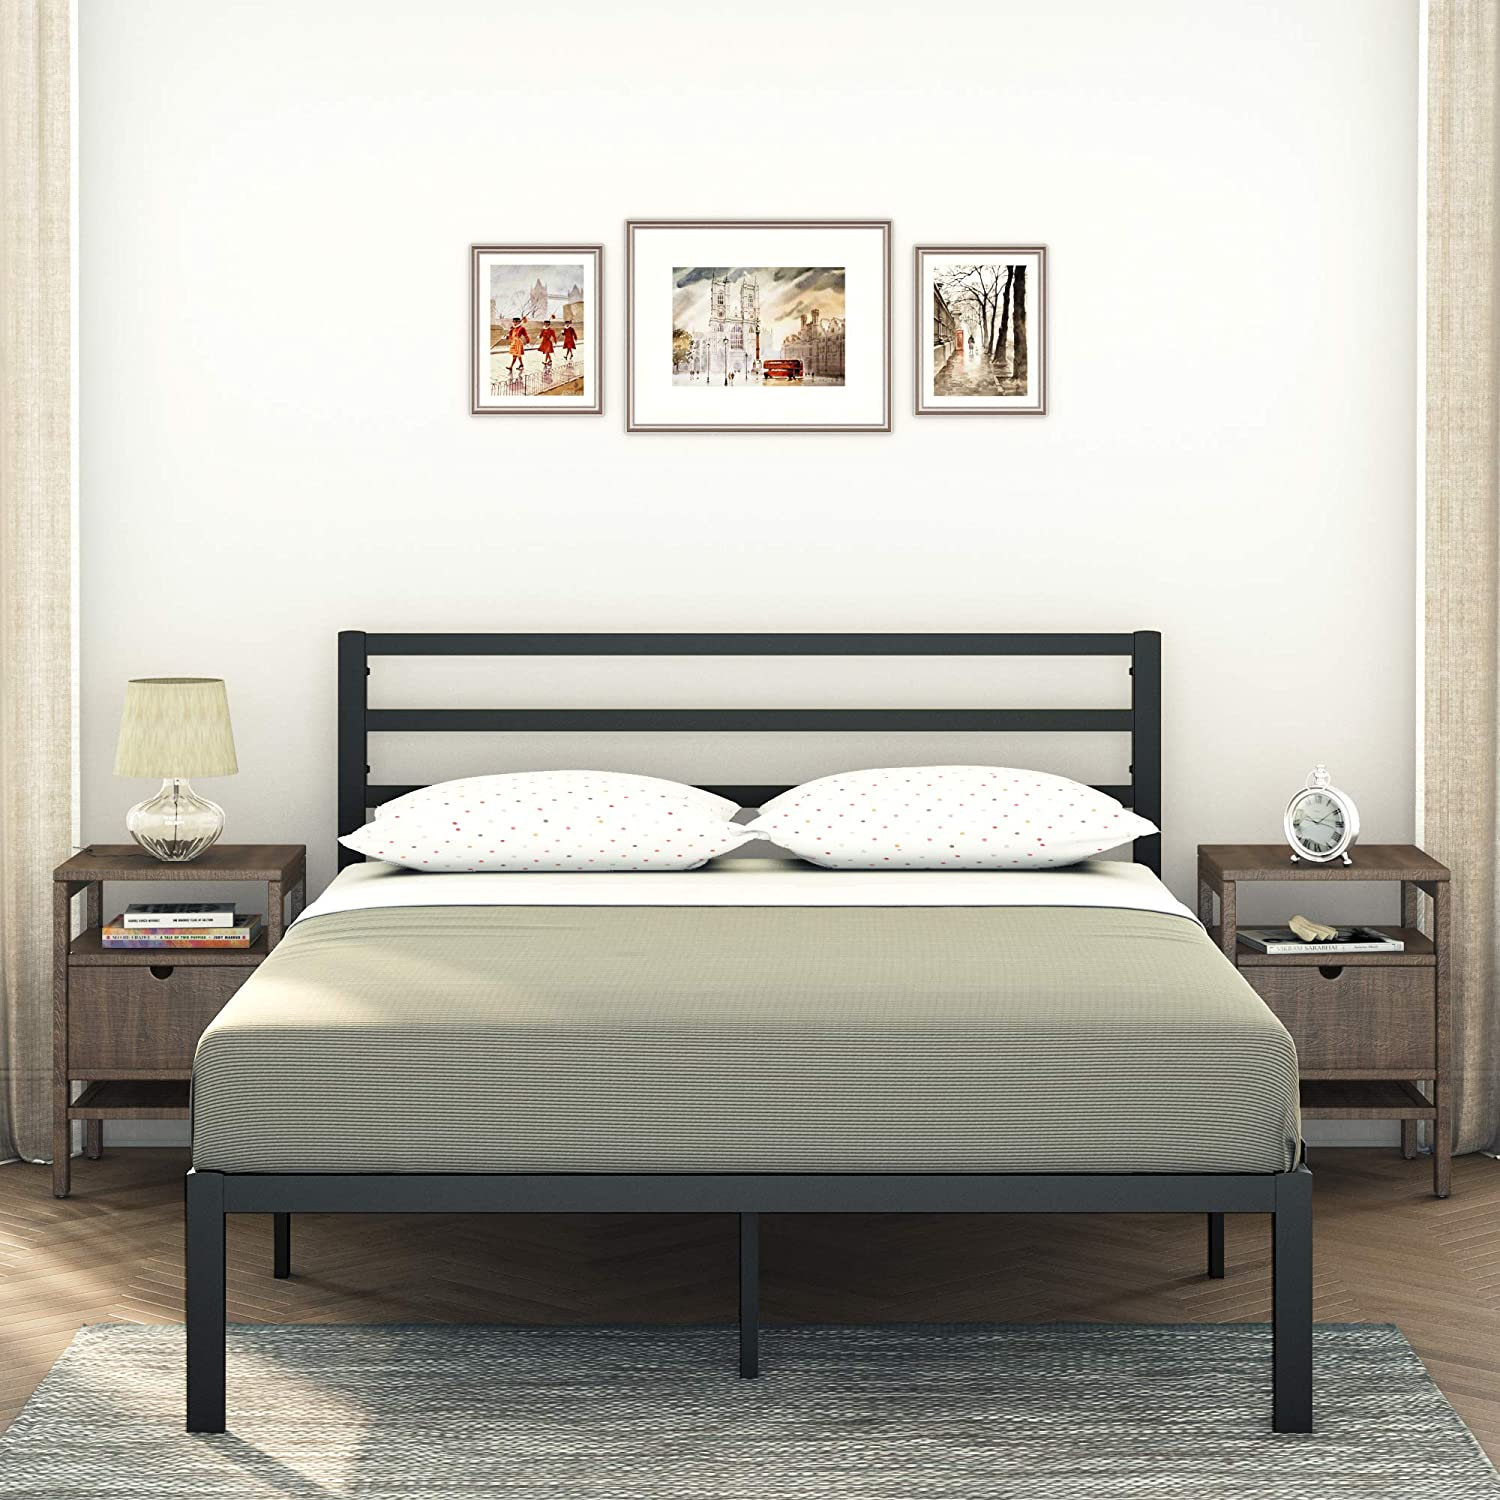 AMBEE21 – Modern Queen Platform Frame Headbo Ranking TOP11 Dallas Mall Bed with Metal